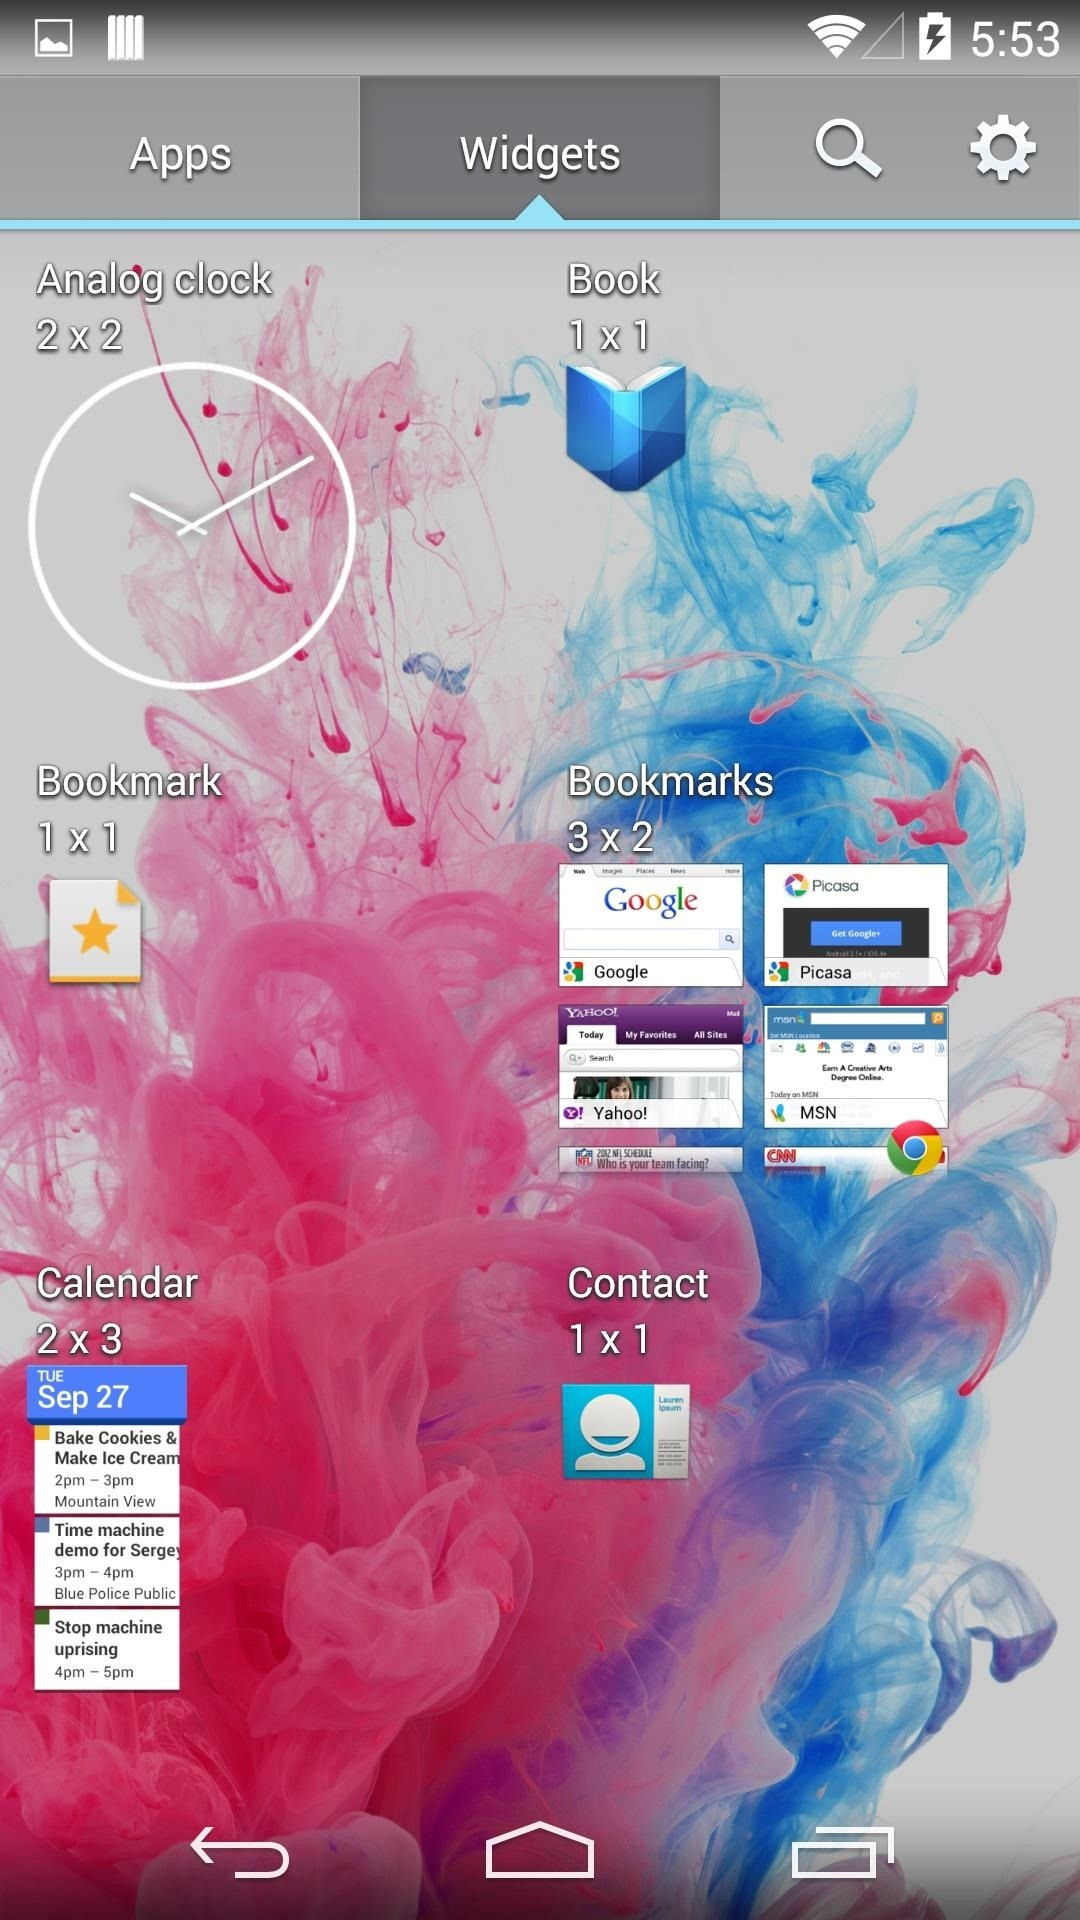 """How to Get the LG G3's Exclusive """"Home"""" Launcher on Your HTC One or Other Android Device"""